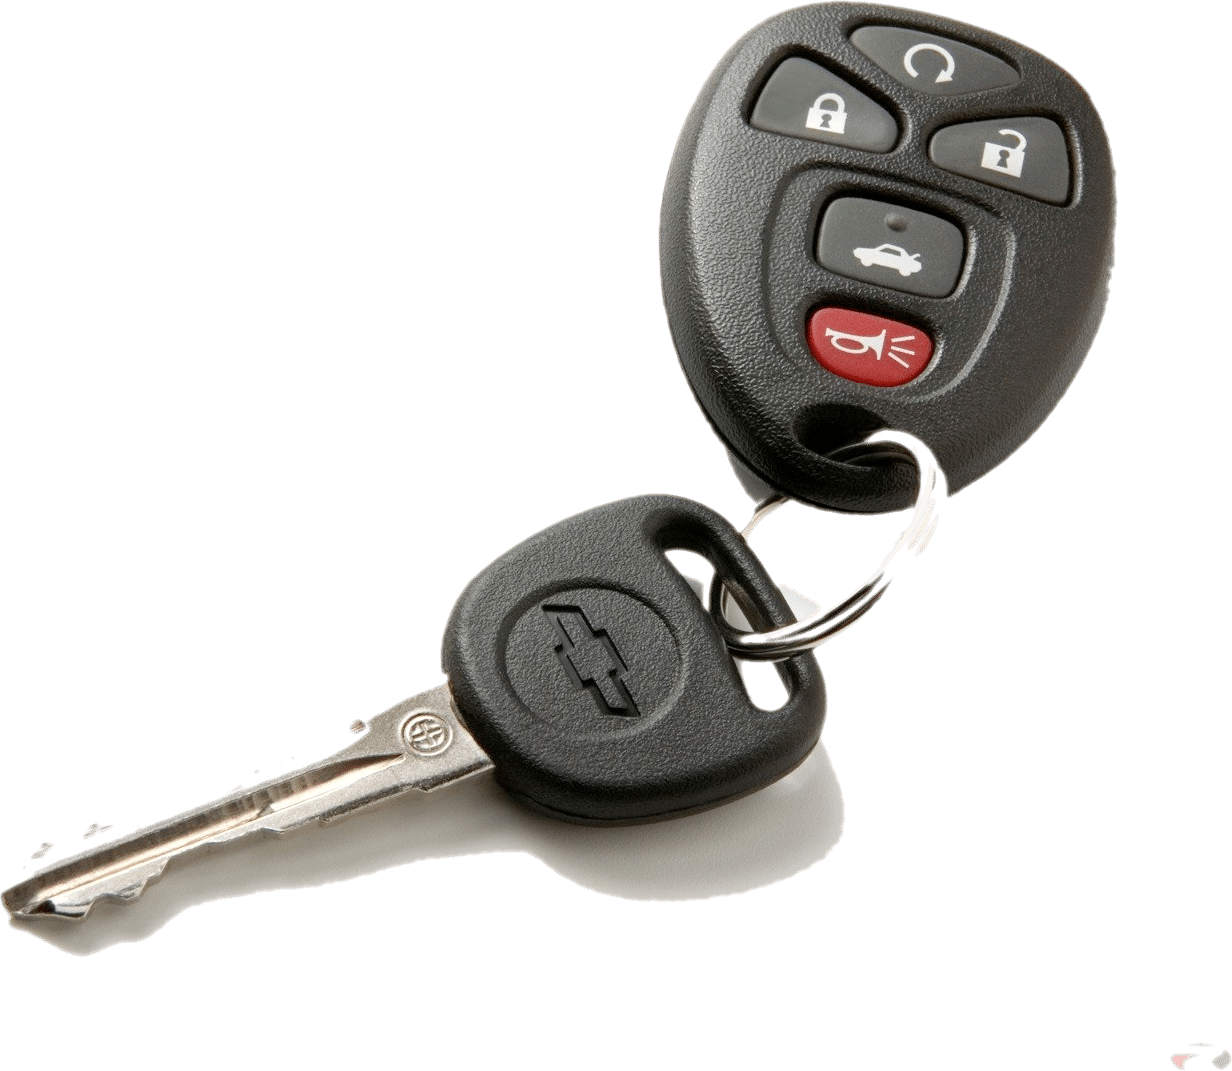 Automotive Locksmith Pro Keys Locksmith